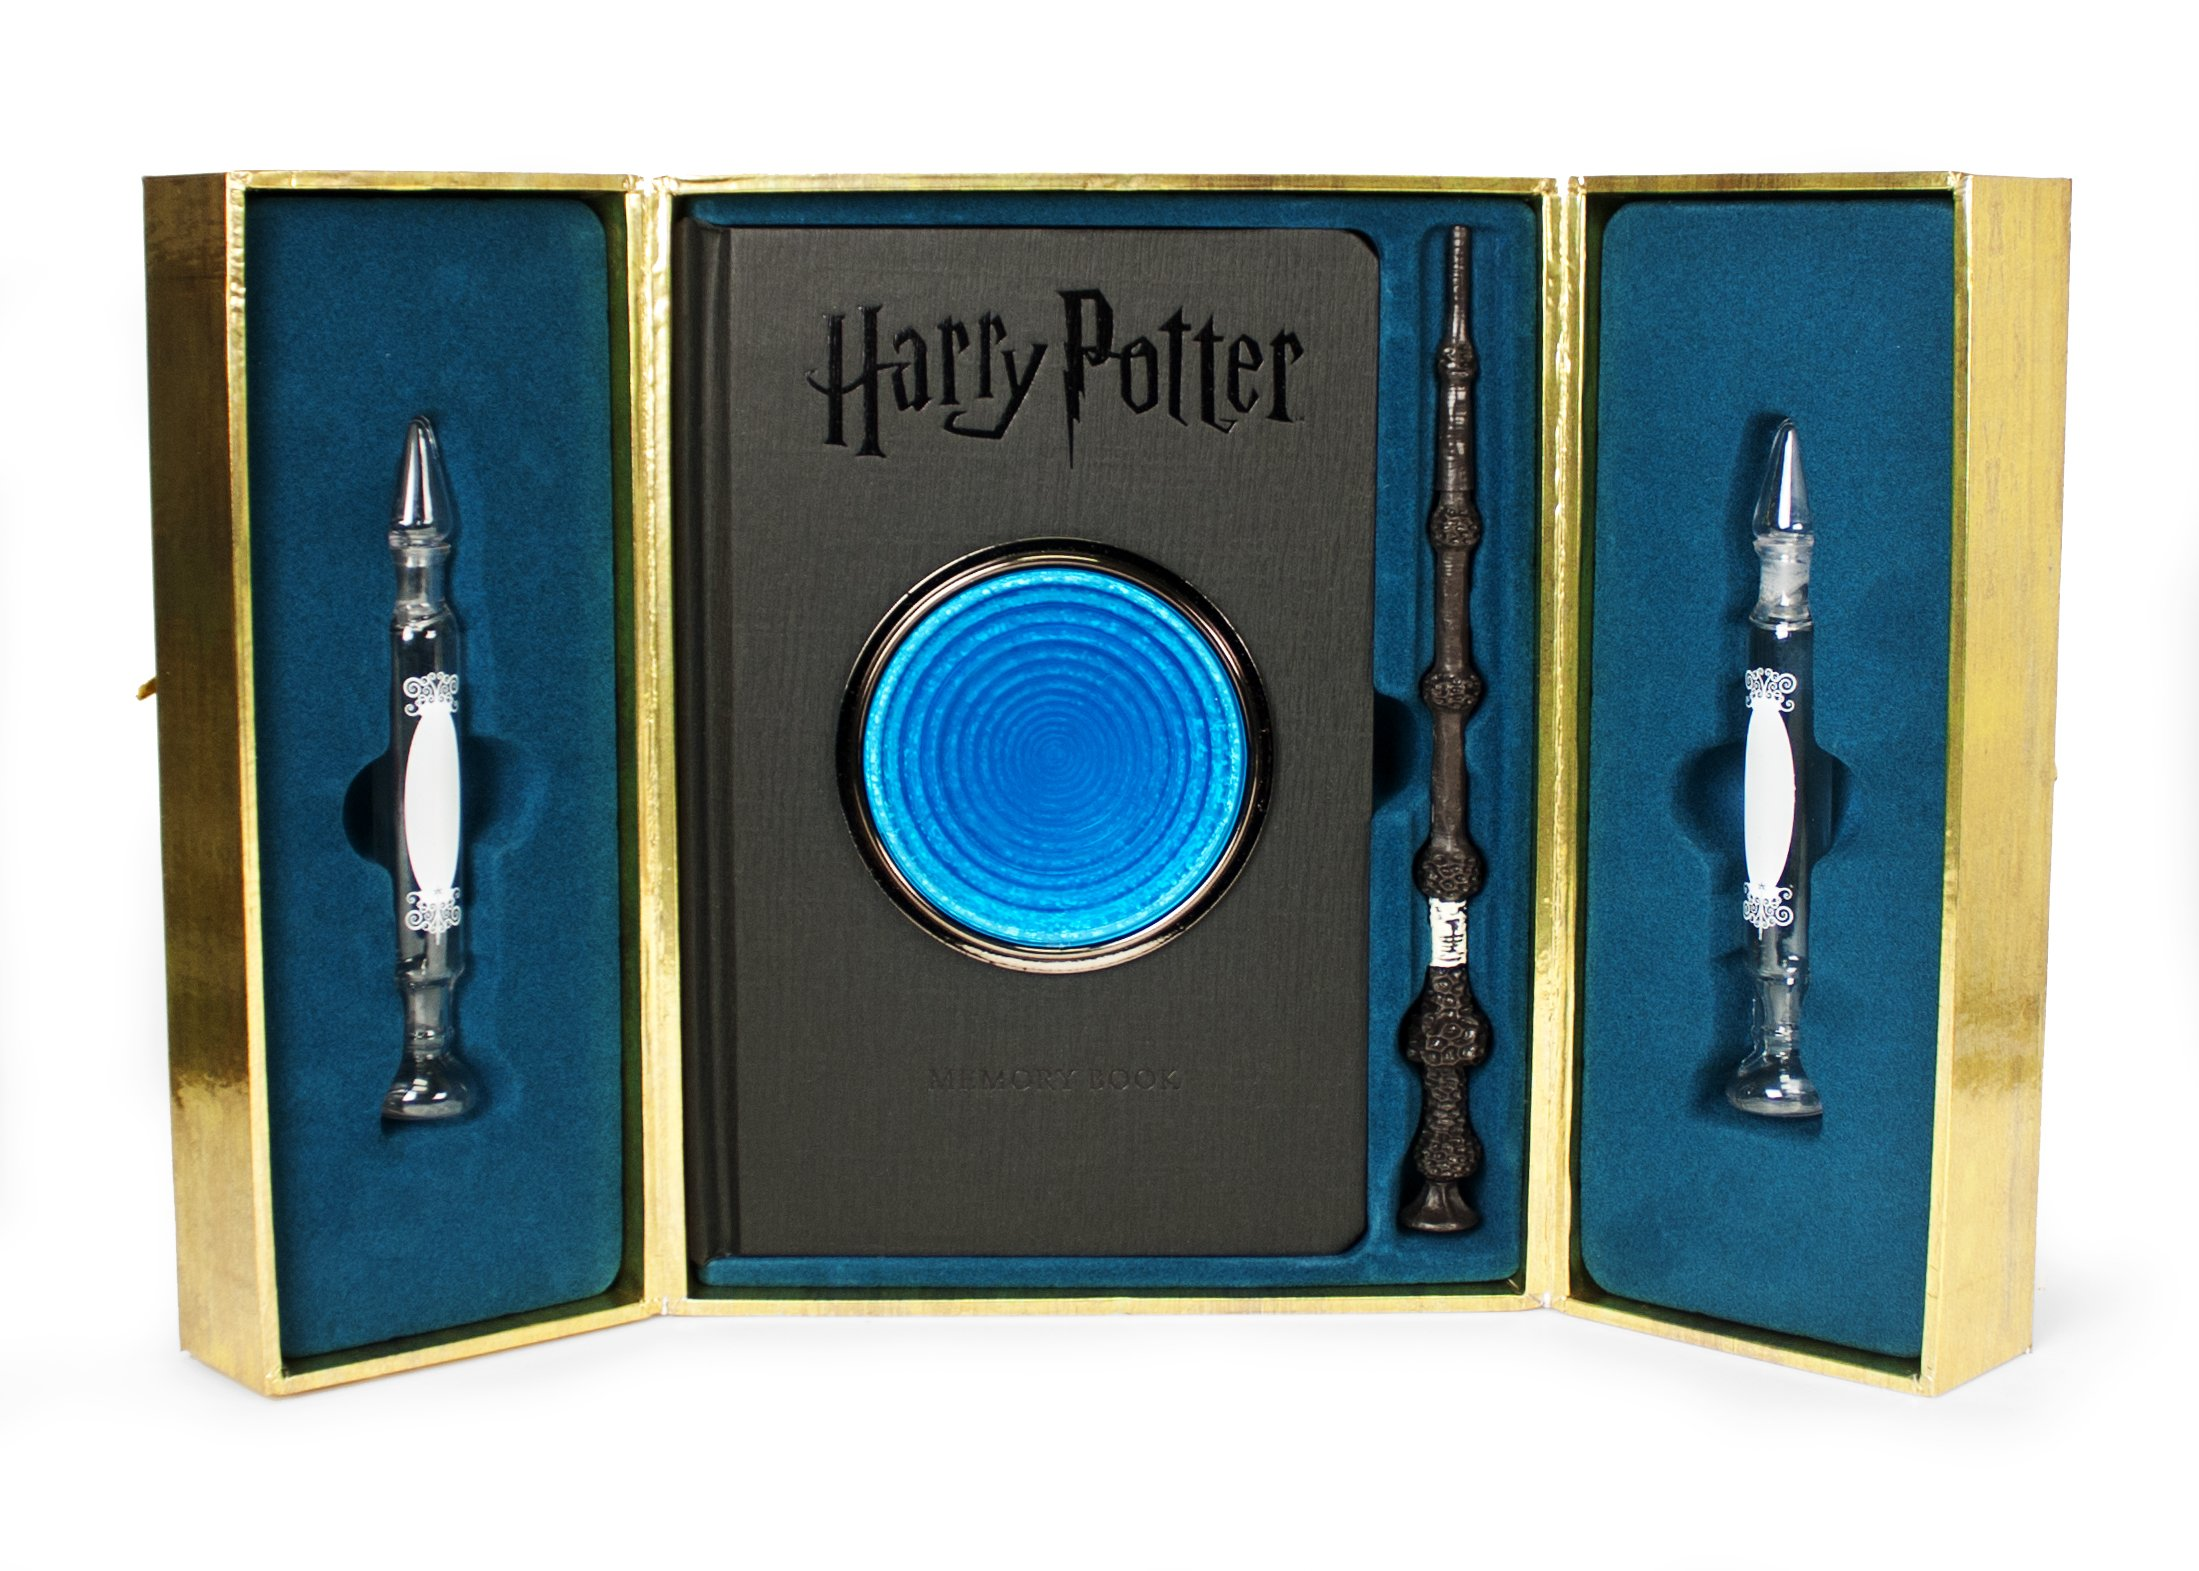 Amazon.com: Harry Potter Pensieve Memory Set (9780762462315 ...